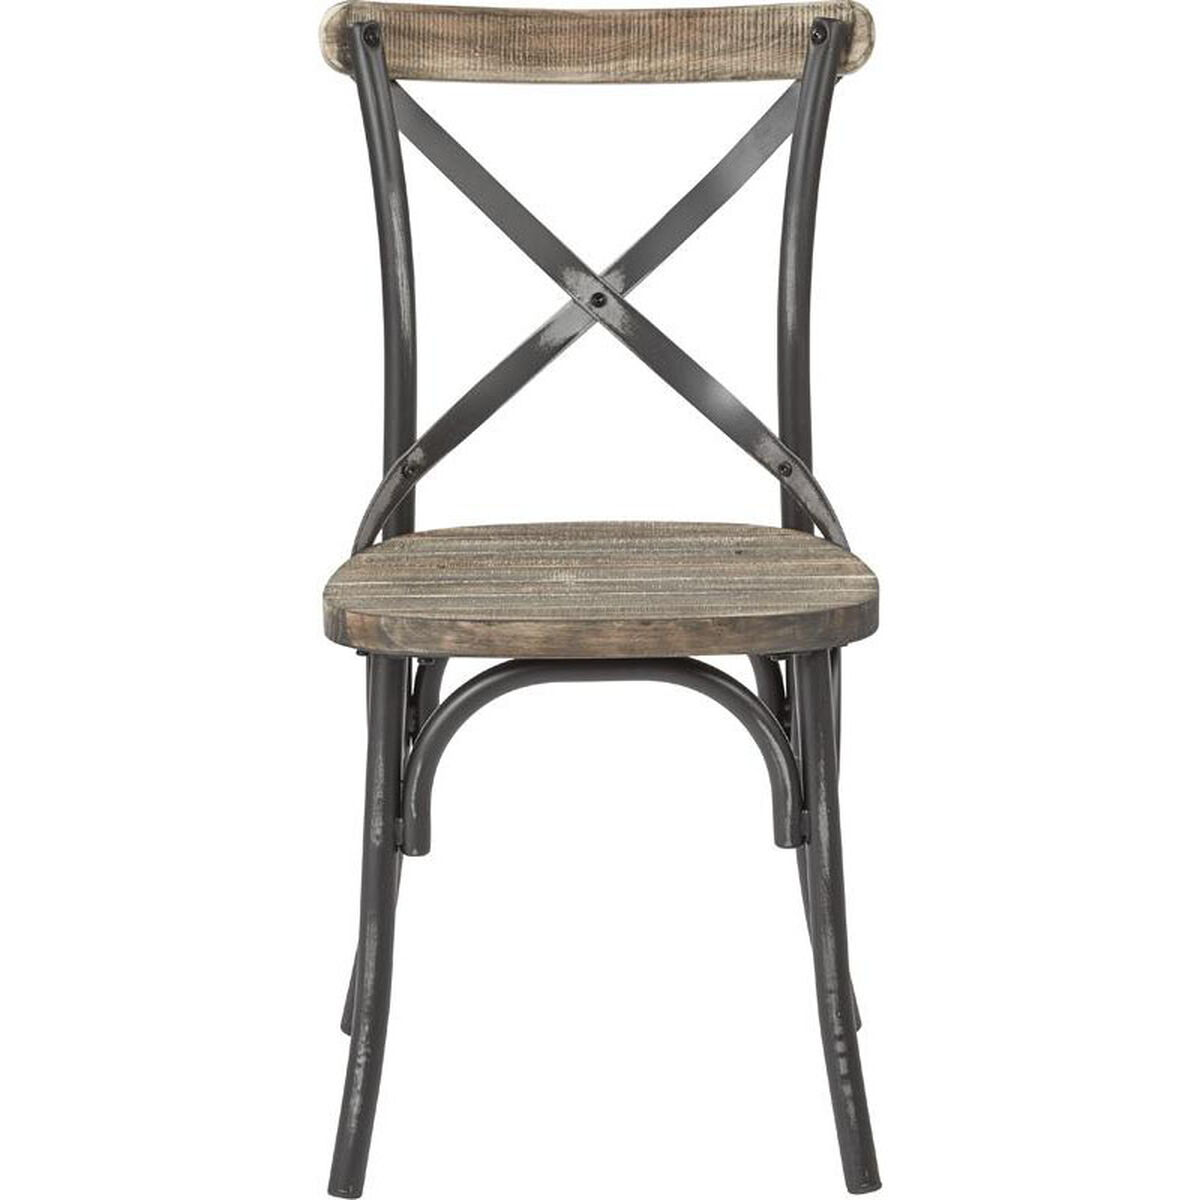 ... Our OSP Designs Somerset X-Back Antique Metal Chair with Hardwood  Walnut Seat Finish - - Somerset Black Metal Chair SMR424WAS-AB RestaurantFurniture4Less.com